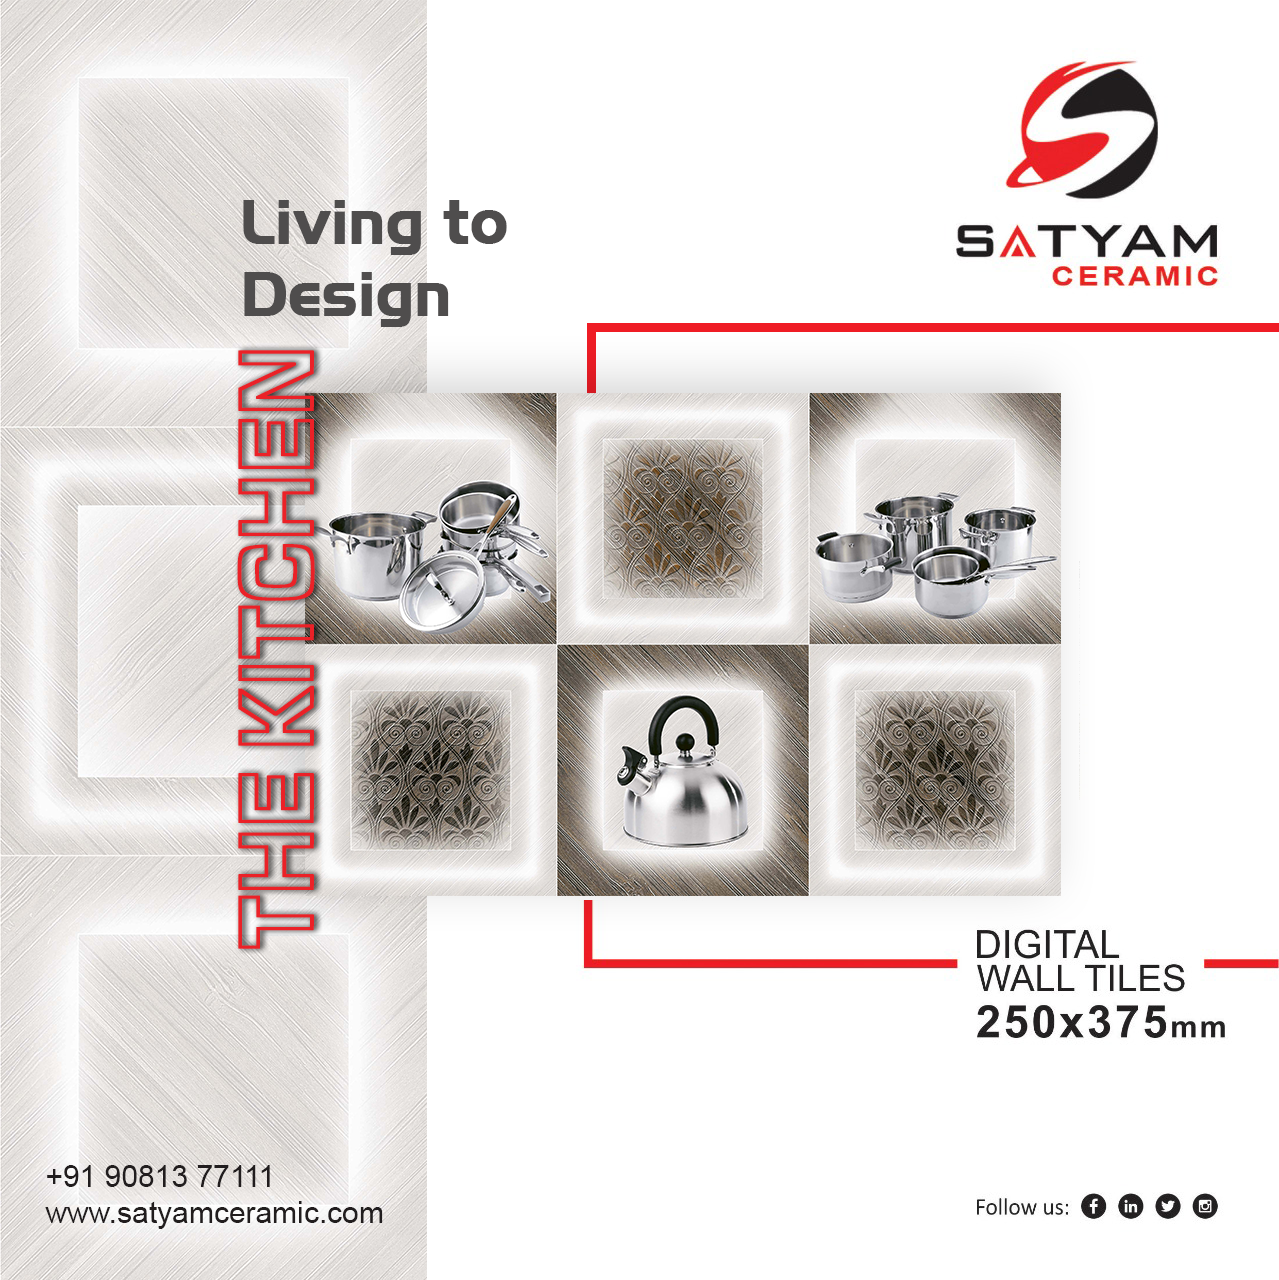 Living To Design The Kitchen Digital Wall Tiles 250x375 Mm Satyamceramic Digitalwalltiles Walltiles Tiles Cera Ceramic Design Wall Tiles Ceramics